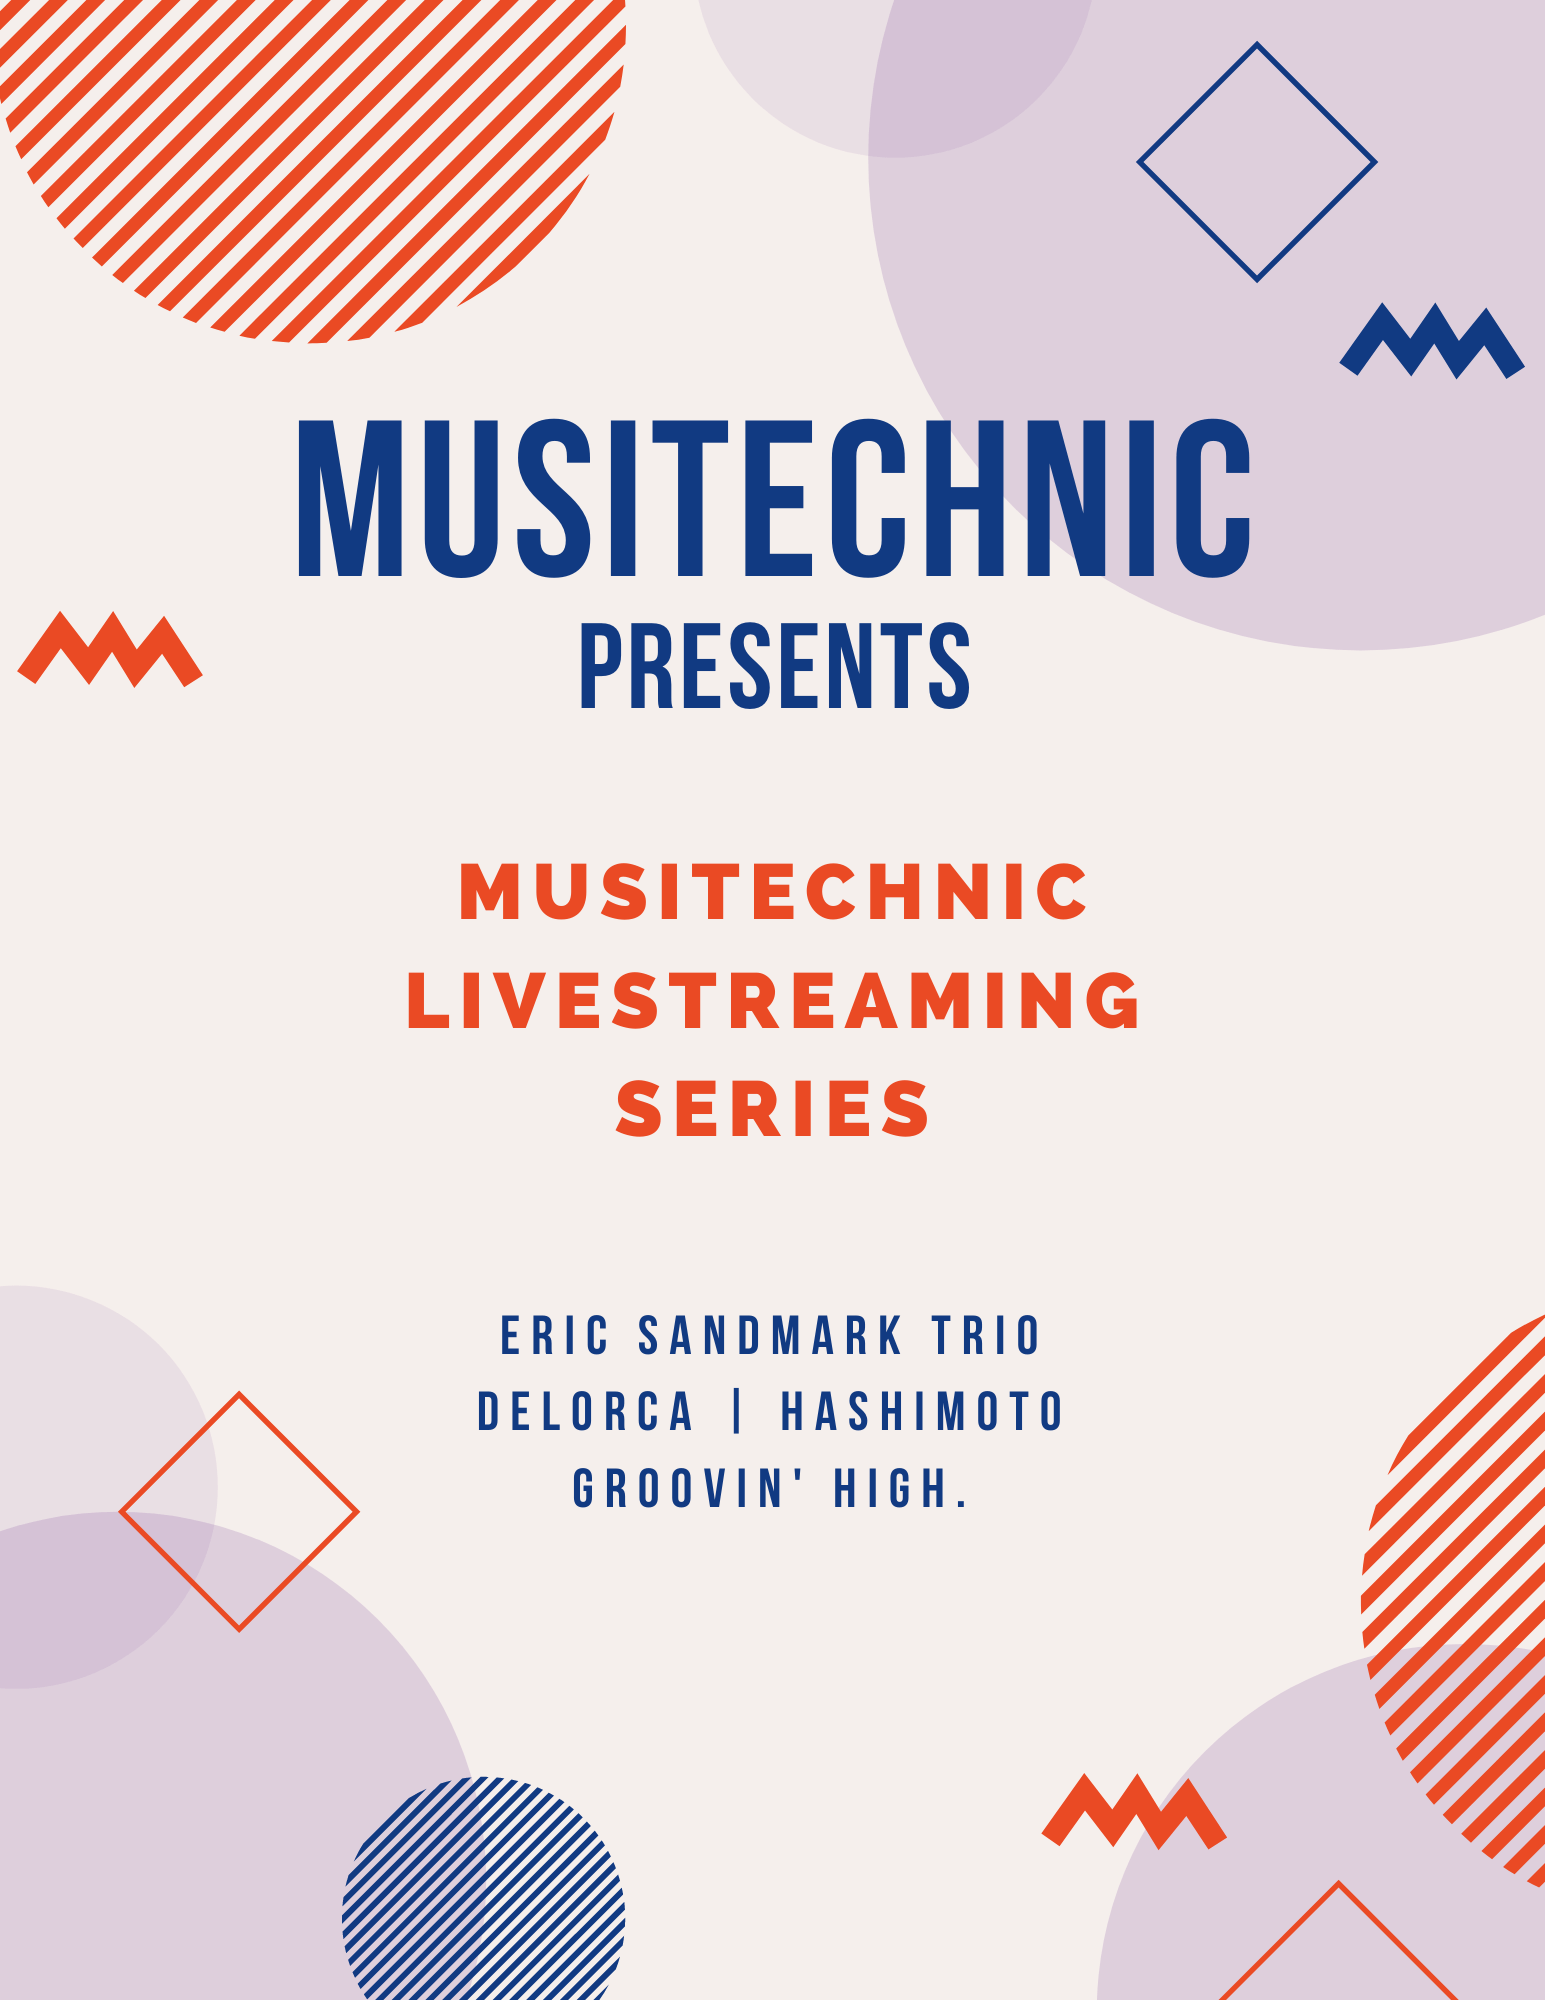 Musitechnic Live Streaming series